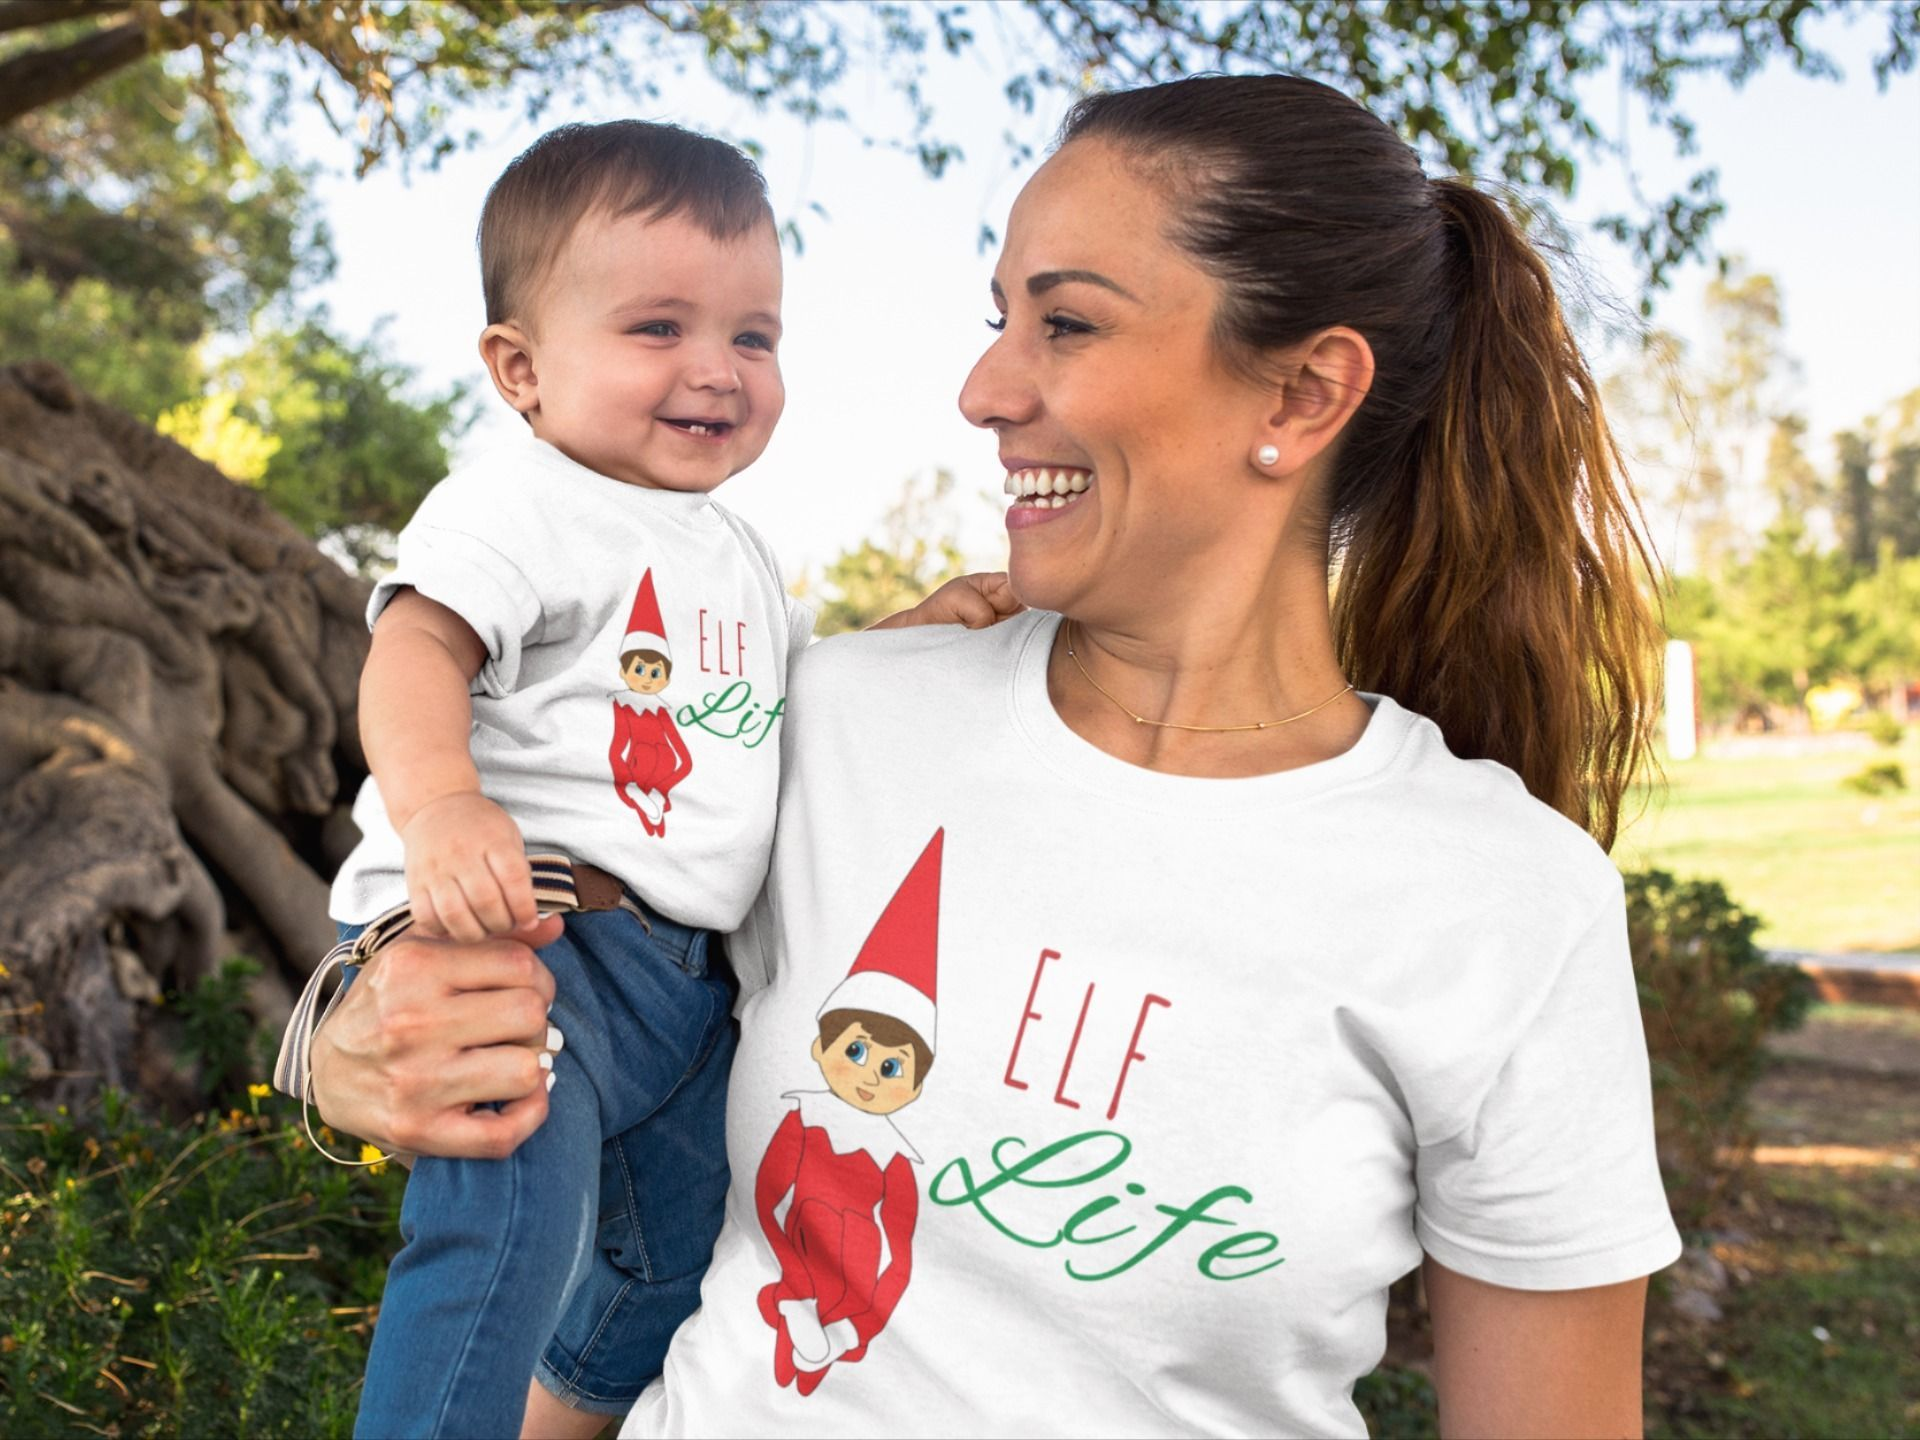 Elf On The Shelf Ideas for Toddlers - Tshirts, Onesies, Hoodies, and More! #elfontheshelfideasfortoddlers •Elf On The Shelf Ideas for toddlers • Your cute little toddler will love this Elf On The Shelf apparel. Melt everyone's heart with your holiday gift card this year by outfitting your whole family in Elf Life apparel. Many options to choose from, Buy Now! Onesies, T-shirts, Long Sleeves, Hoodies, Sweaters, and more! #elfontheshelfideasfortoddlers